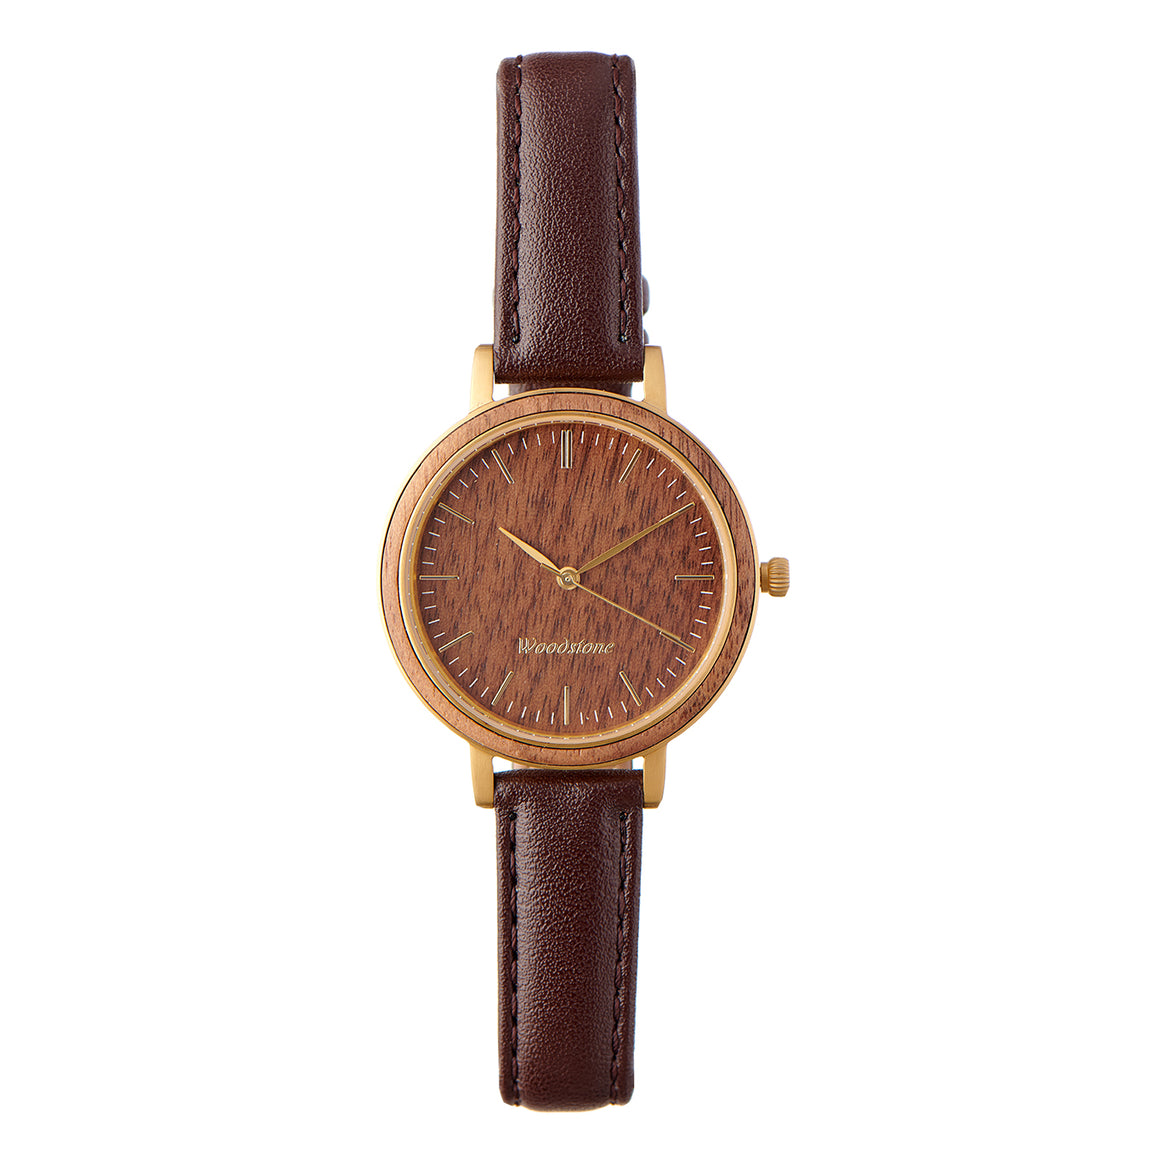 Woodstone Serenity Walnut Women's Wooden Watches - Gold